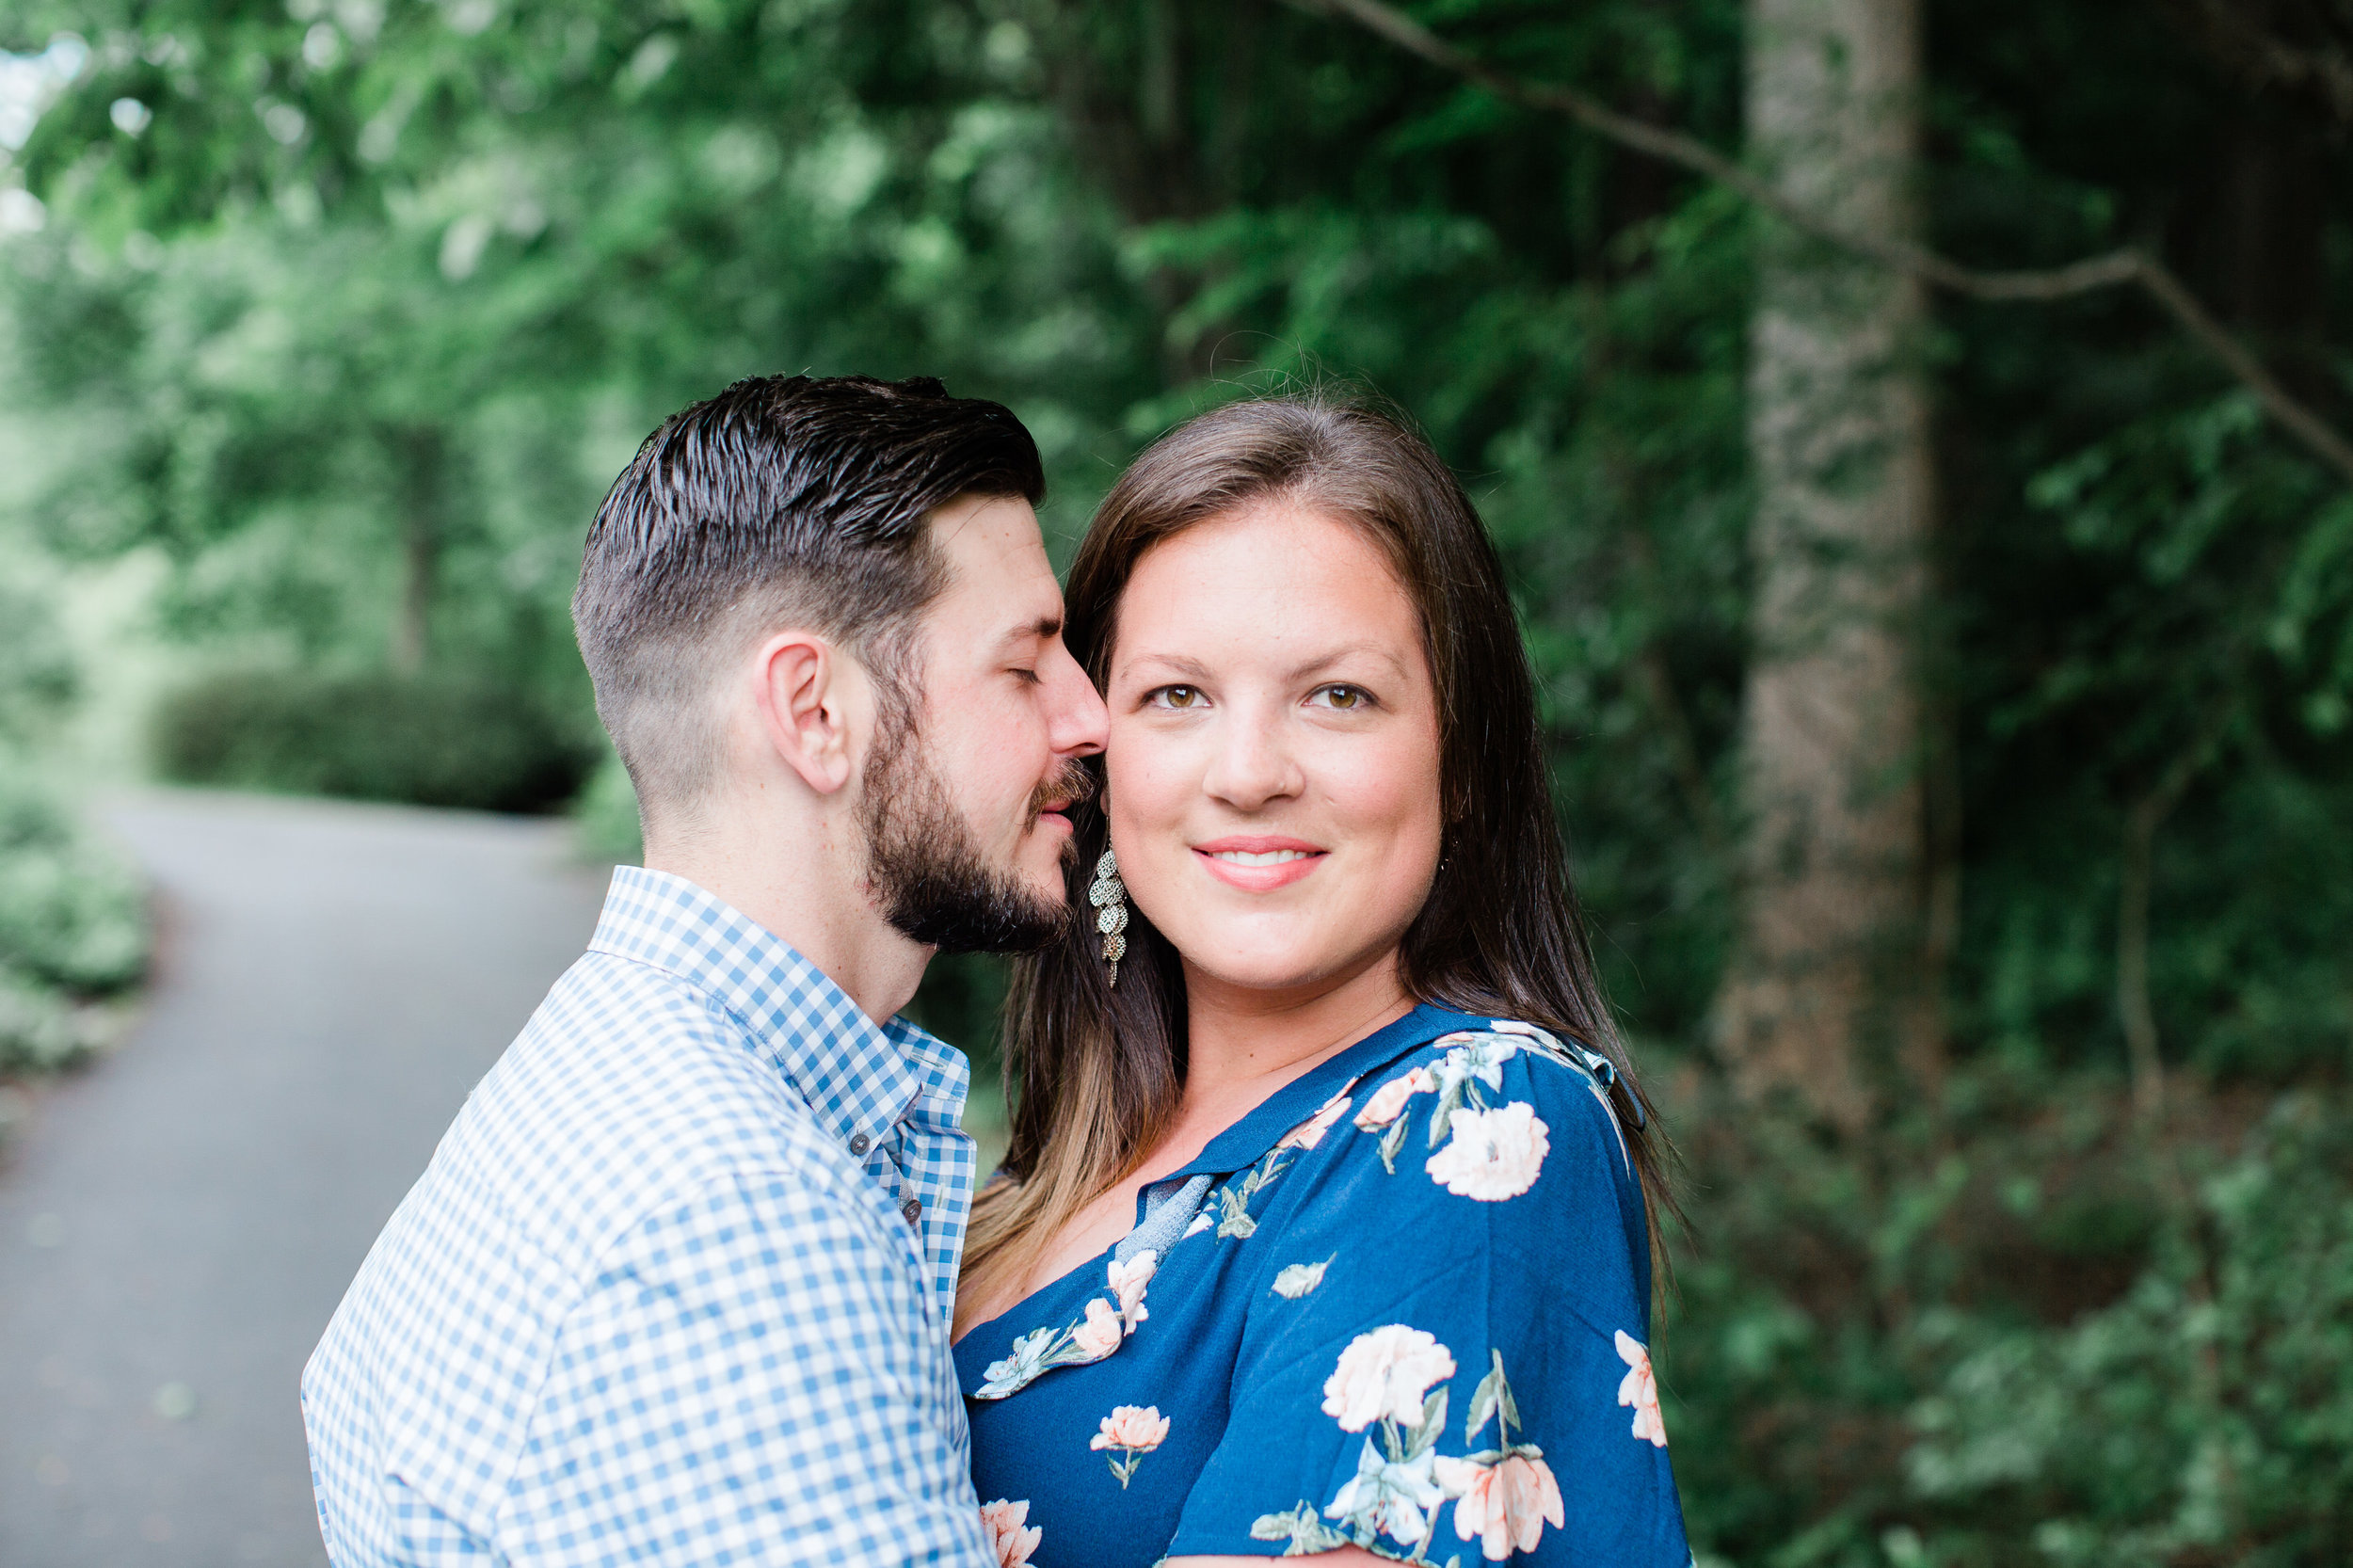 meadowlark_botanical_gardens_engagements-6537.jpg